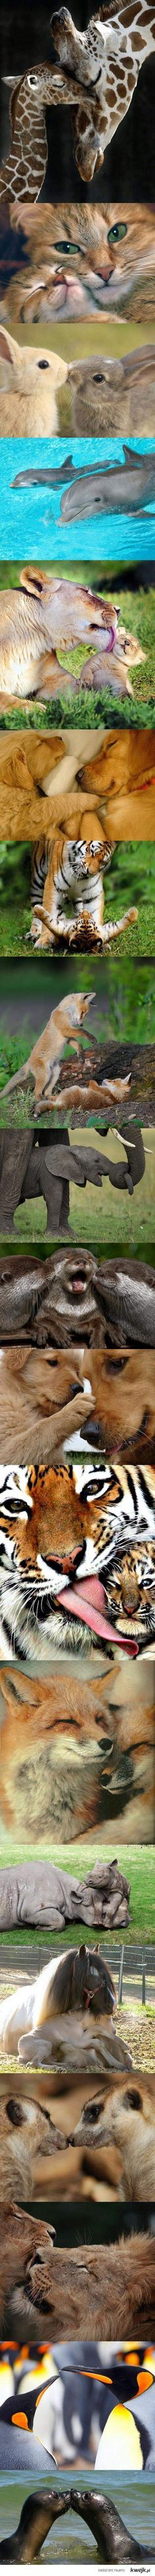 Cute Animal Moments